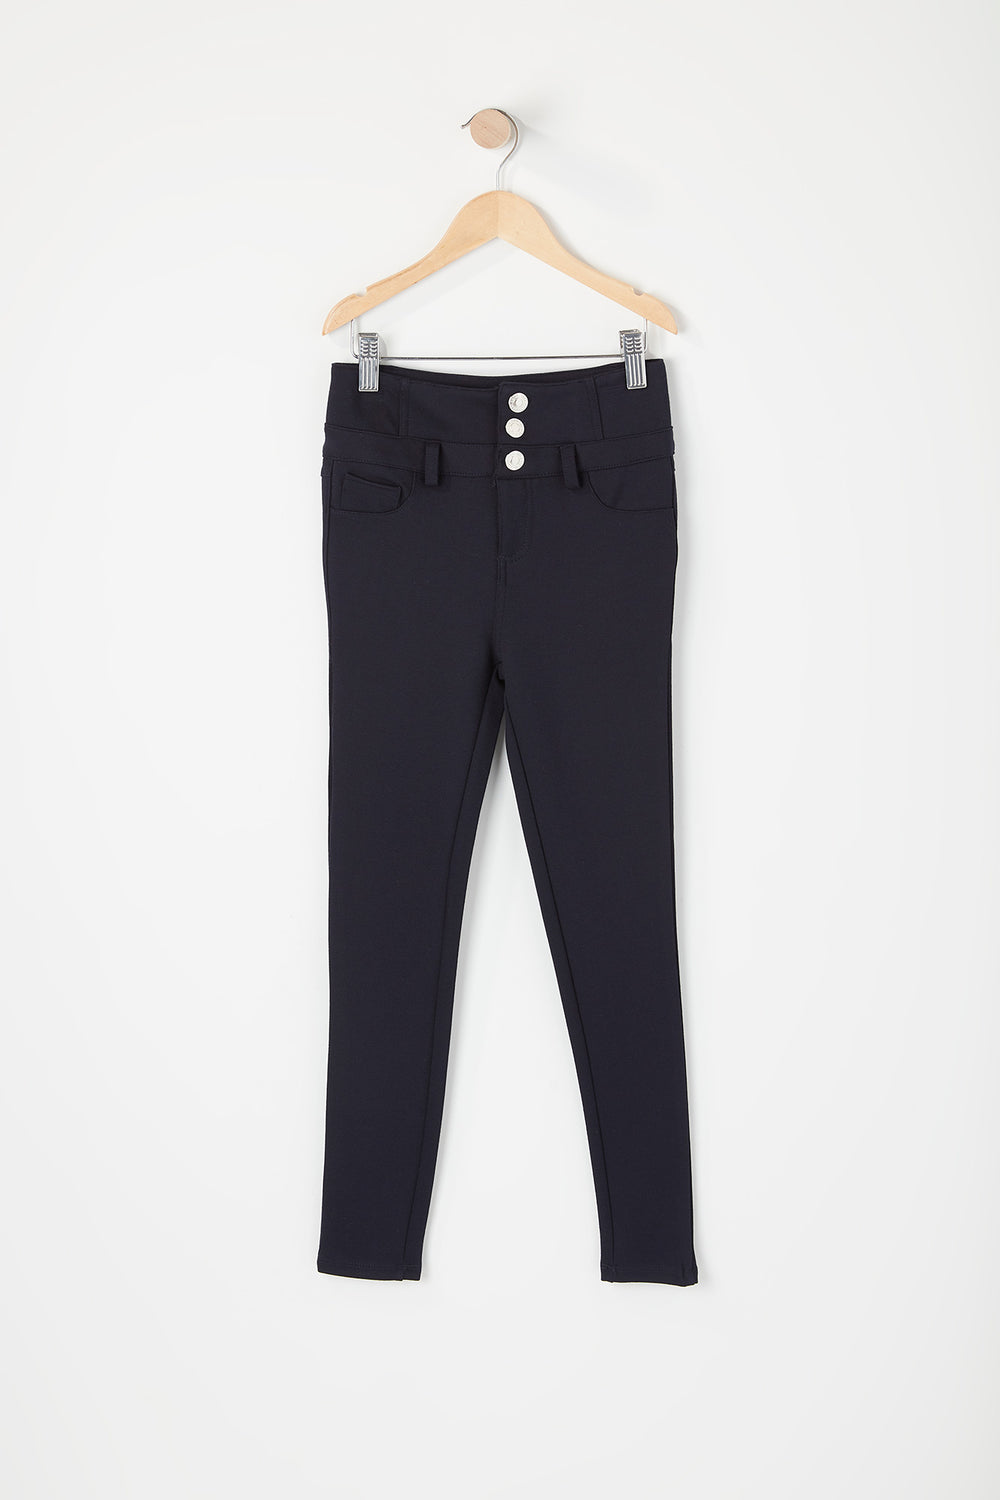 Girls 3-Tier High-Rise Jegging Navy